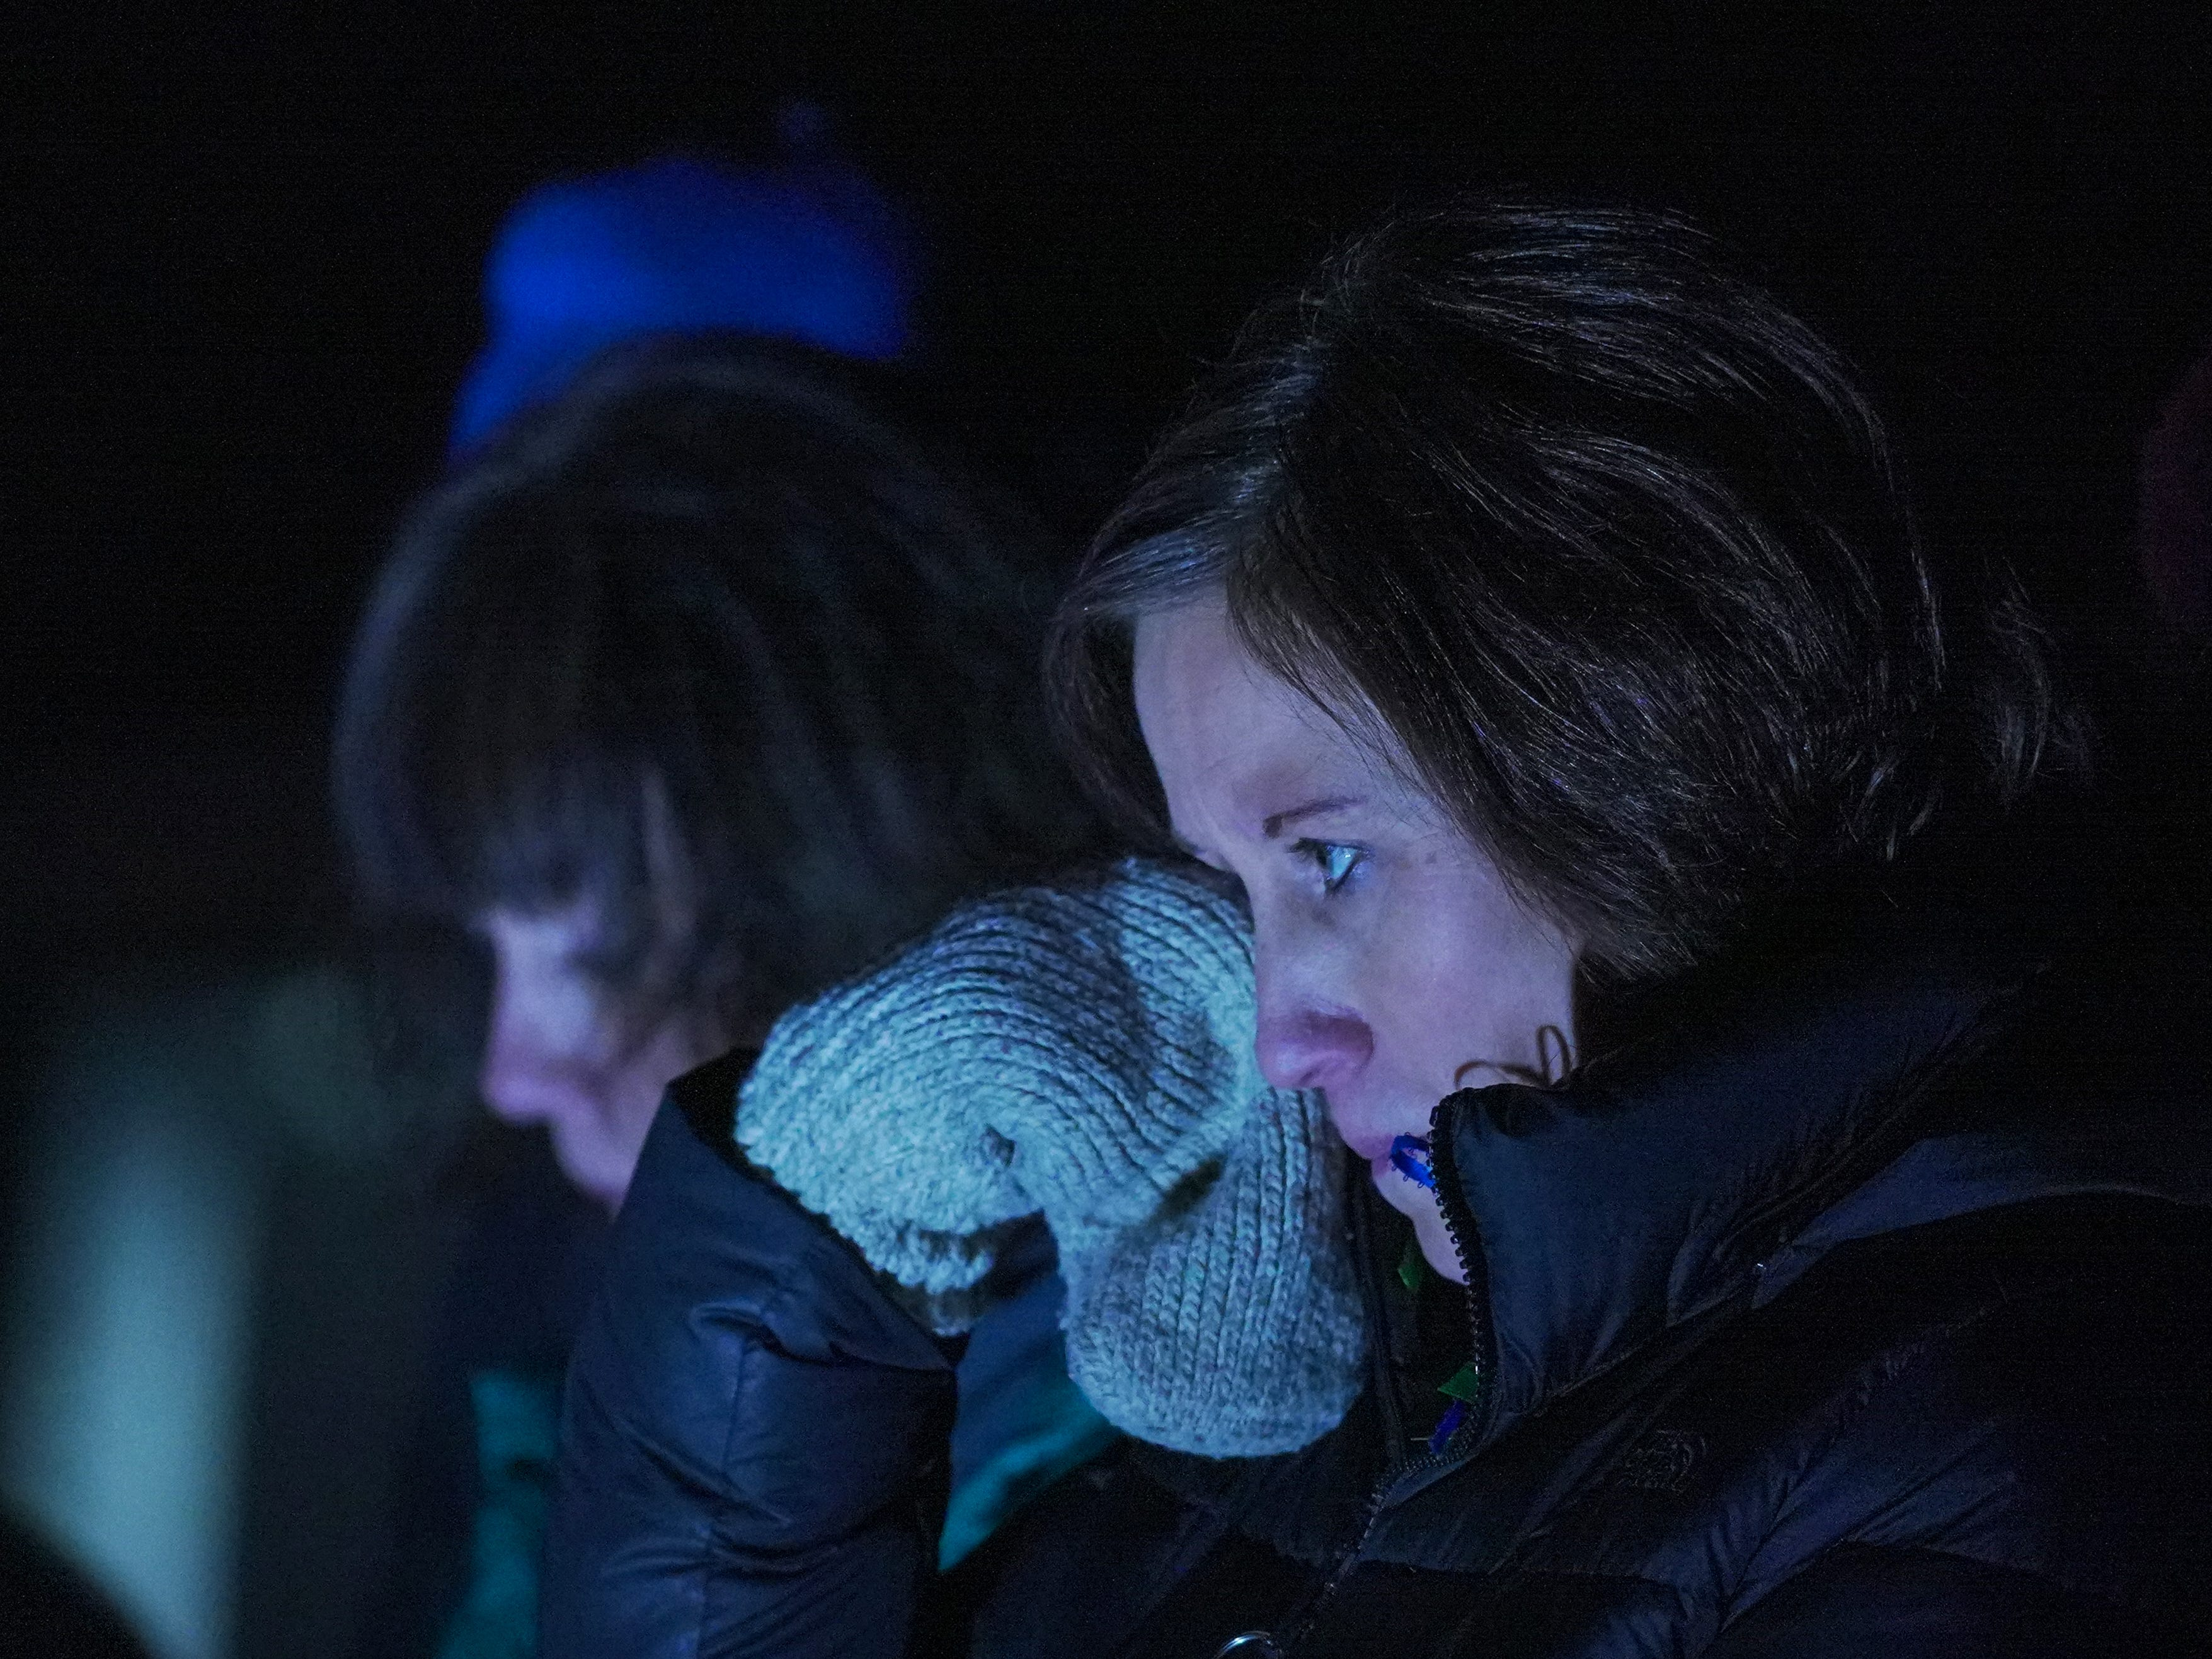 A person wipes away tears during the Tree of Hope for Jayme Closs ceremony Wednesday, Dec. 12, 2018, outside of Riverview Middle School in Barron, Wisc. T'xer Zhon Kha/USA TODAY NETWORK-Wisconsin